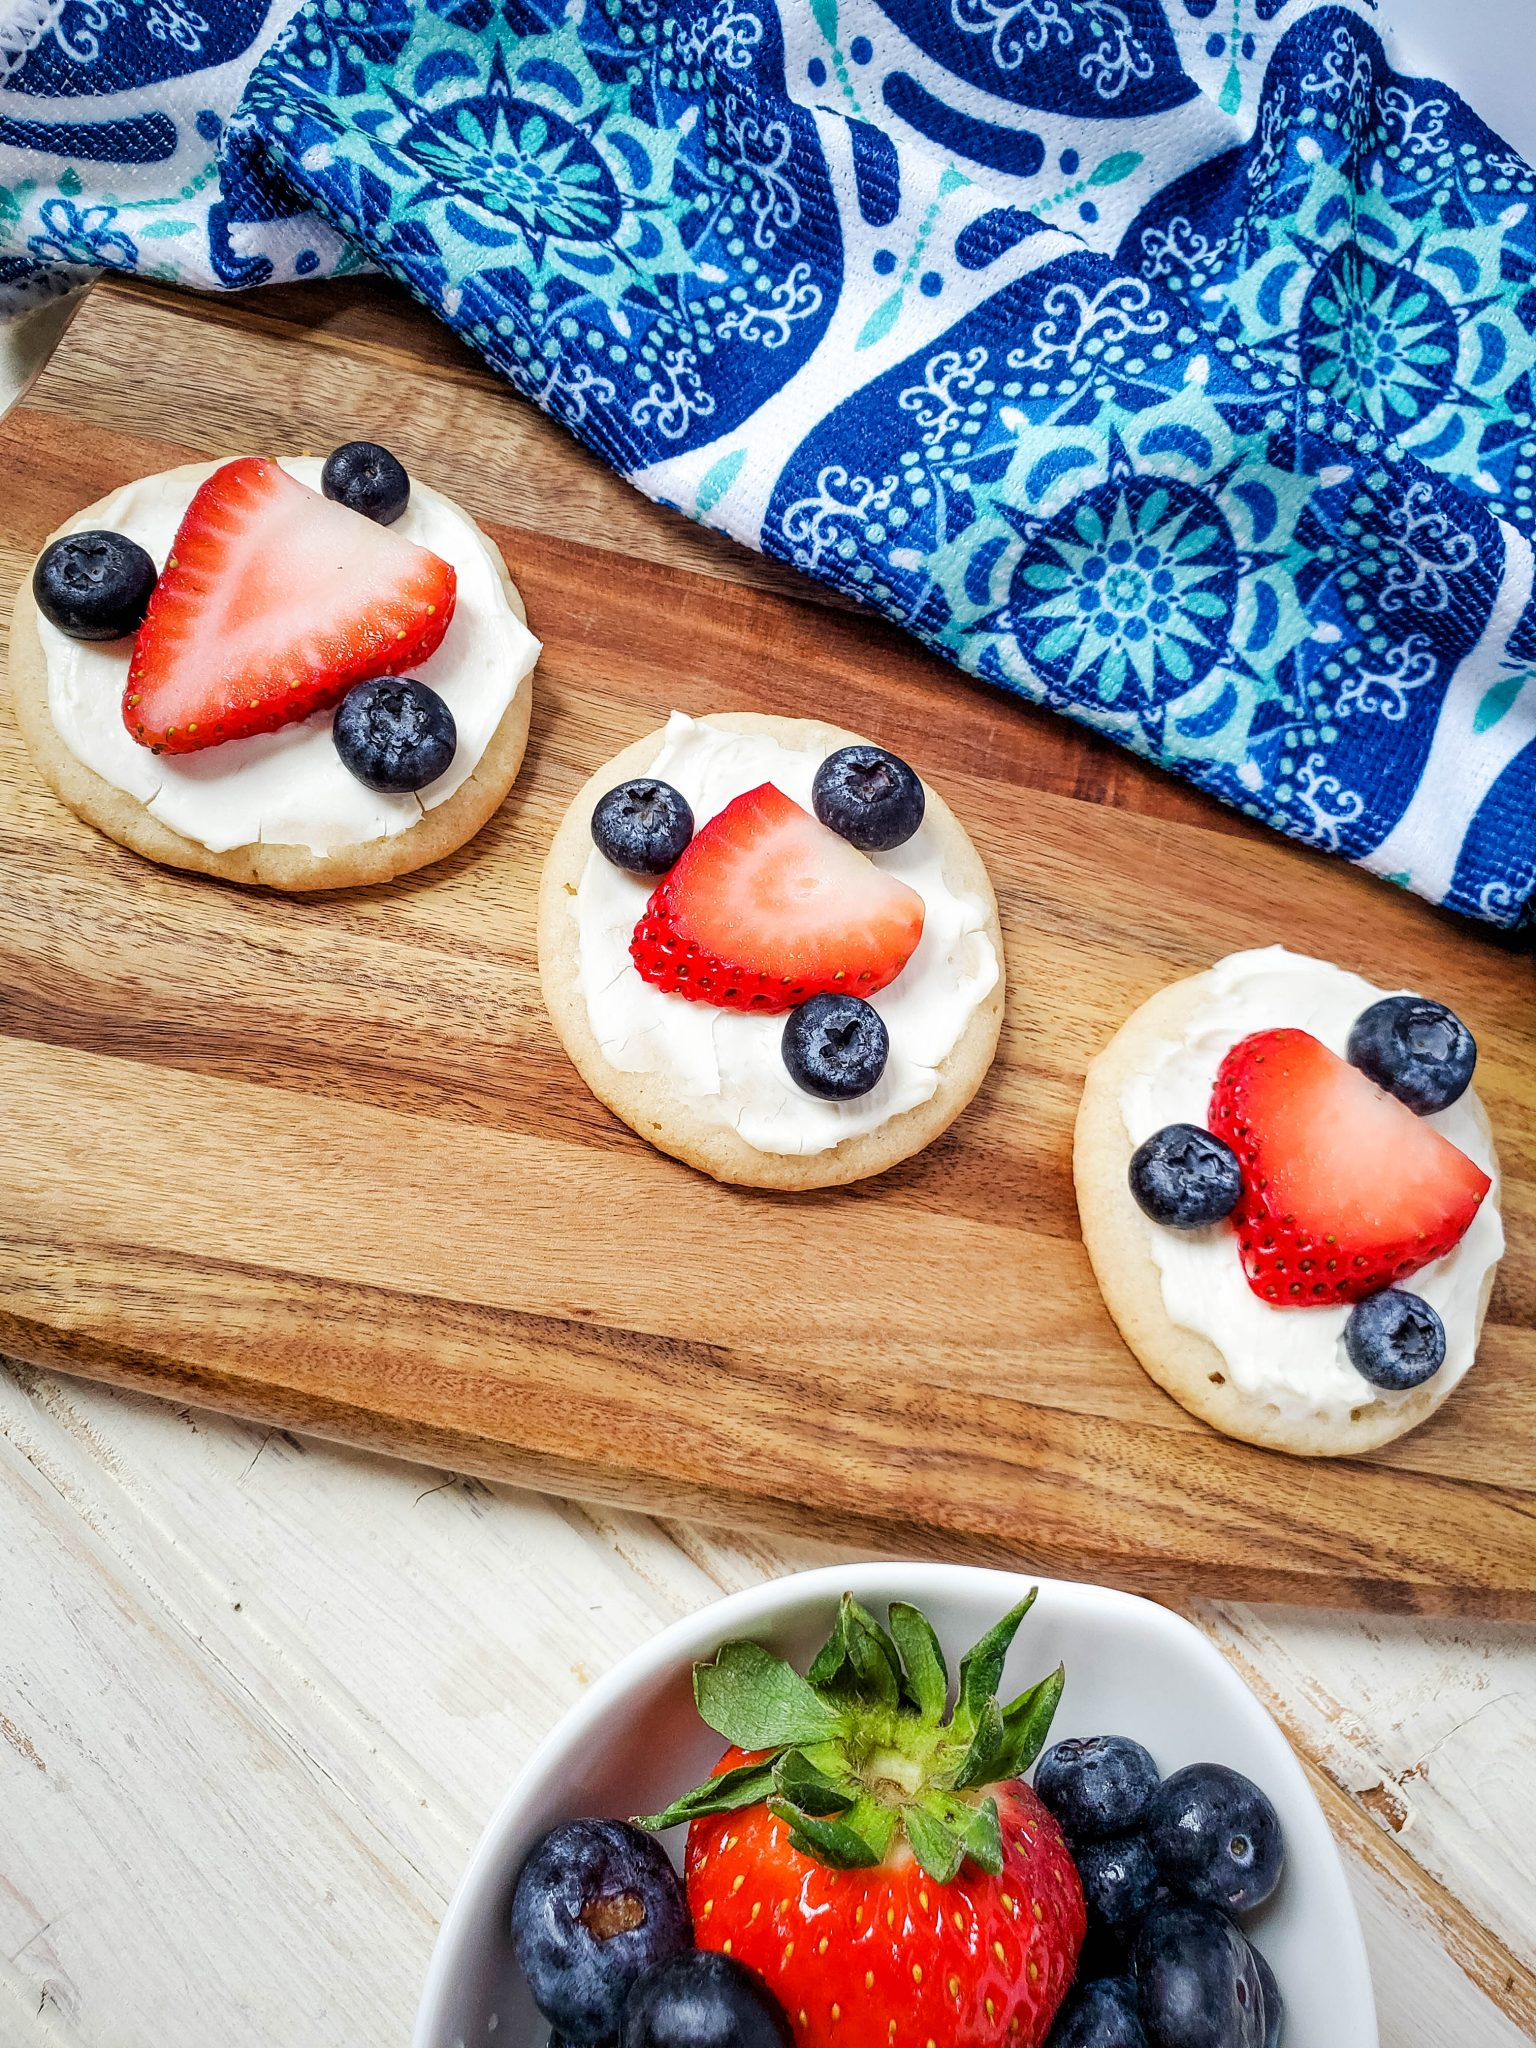 Sugar cookies decorated with a strawberry slice an three blueberries on a wood tray with a blue and white patterned tea towel in the background